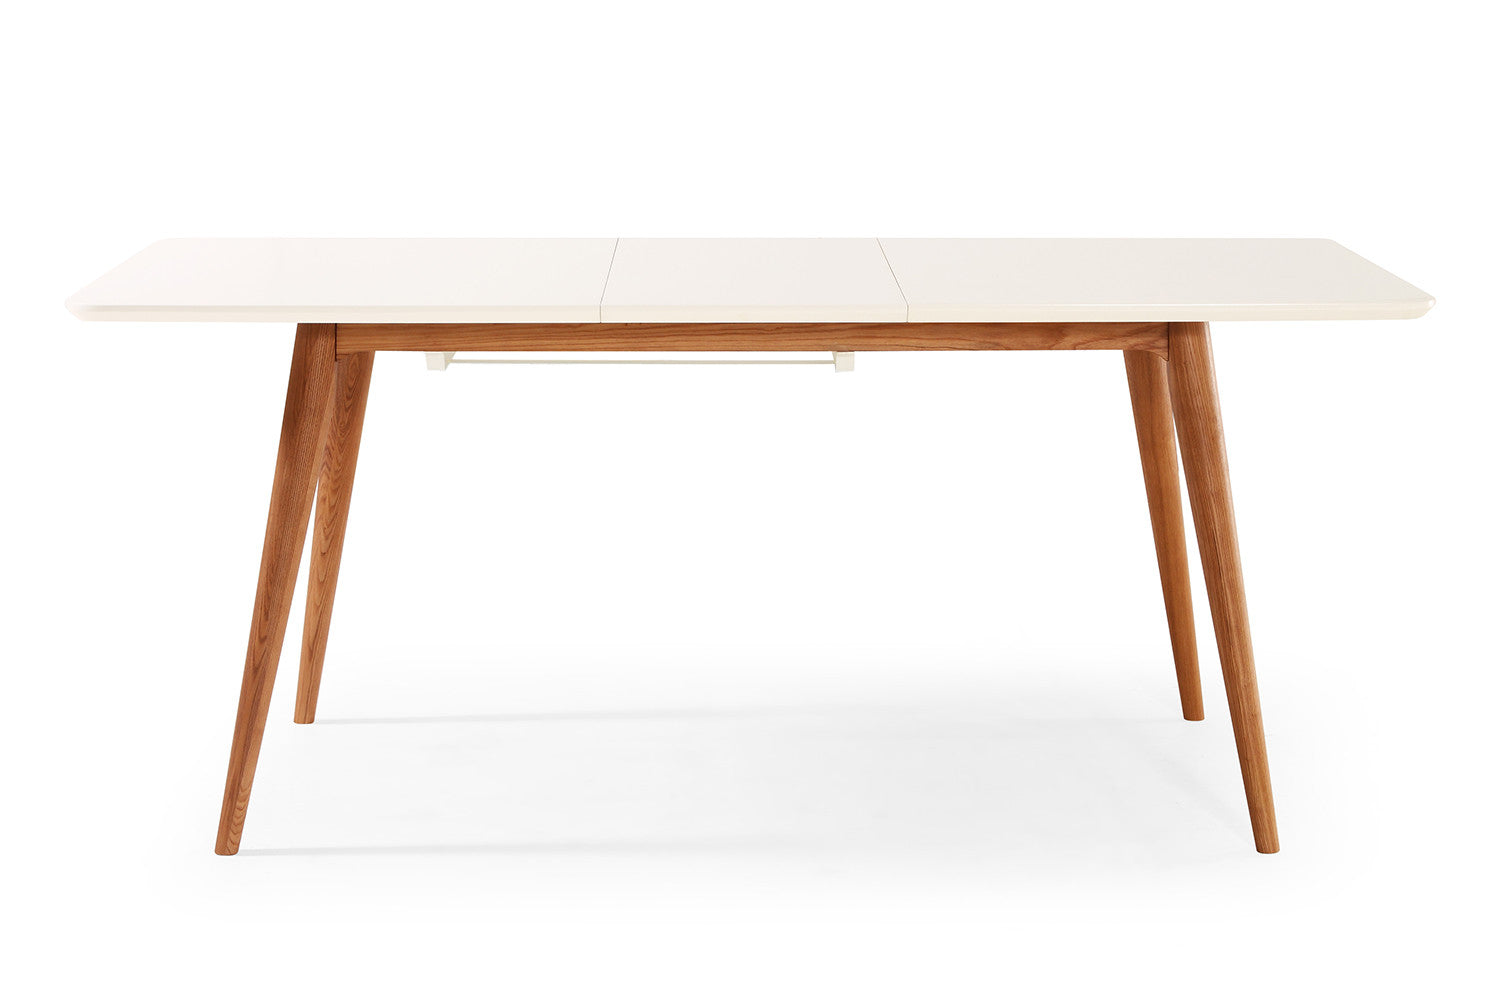 Table de salle manger extensible scandinave wyna dewarens for Table de salle a manger knok